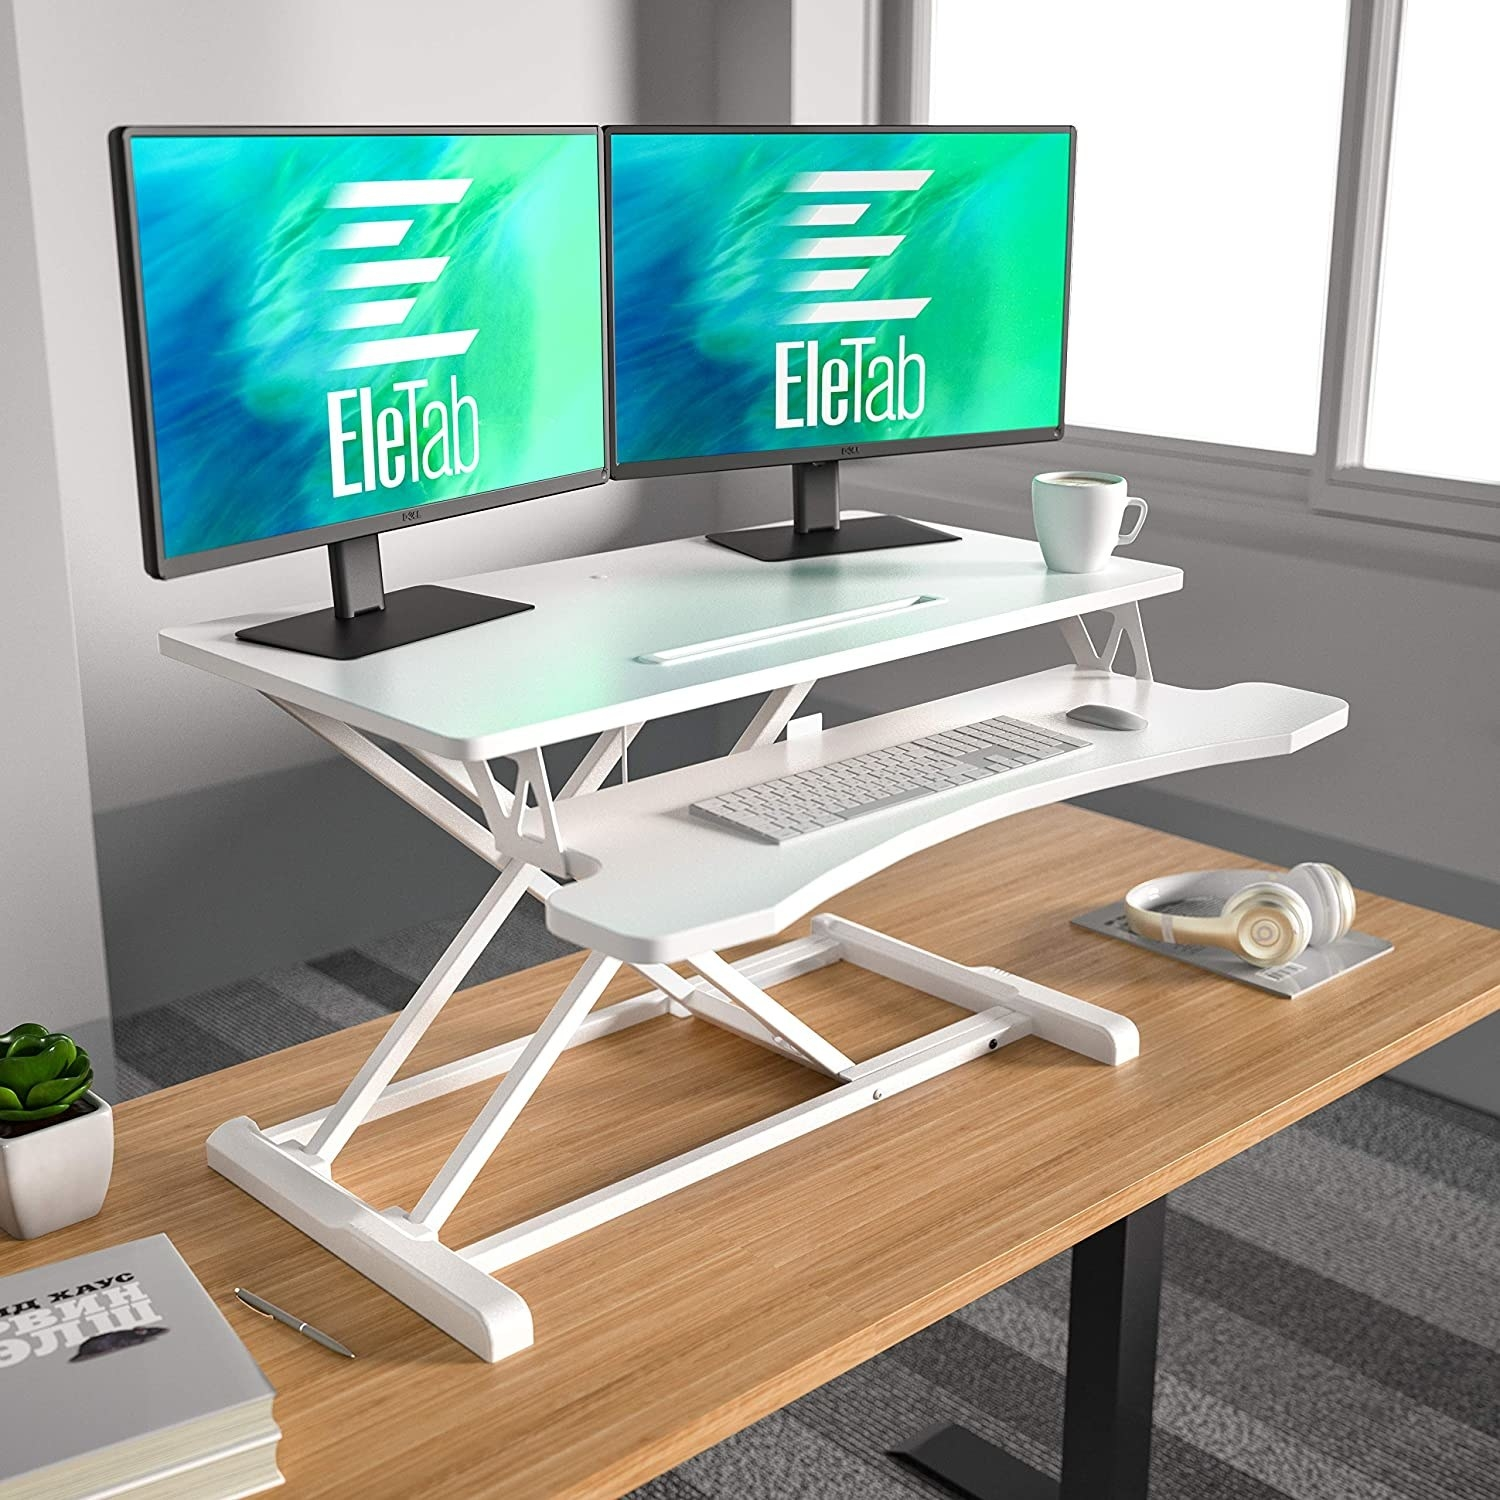 the two-level standing desk in white